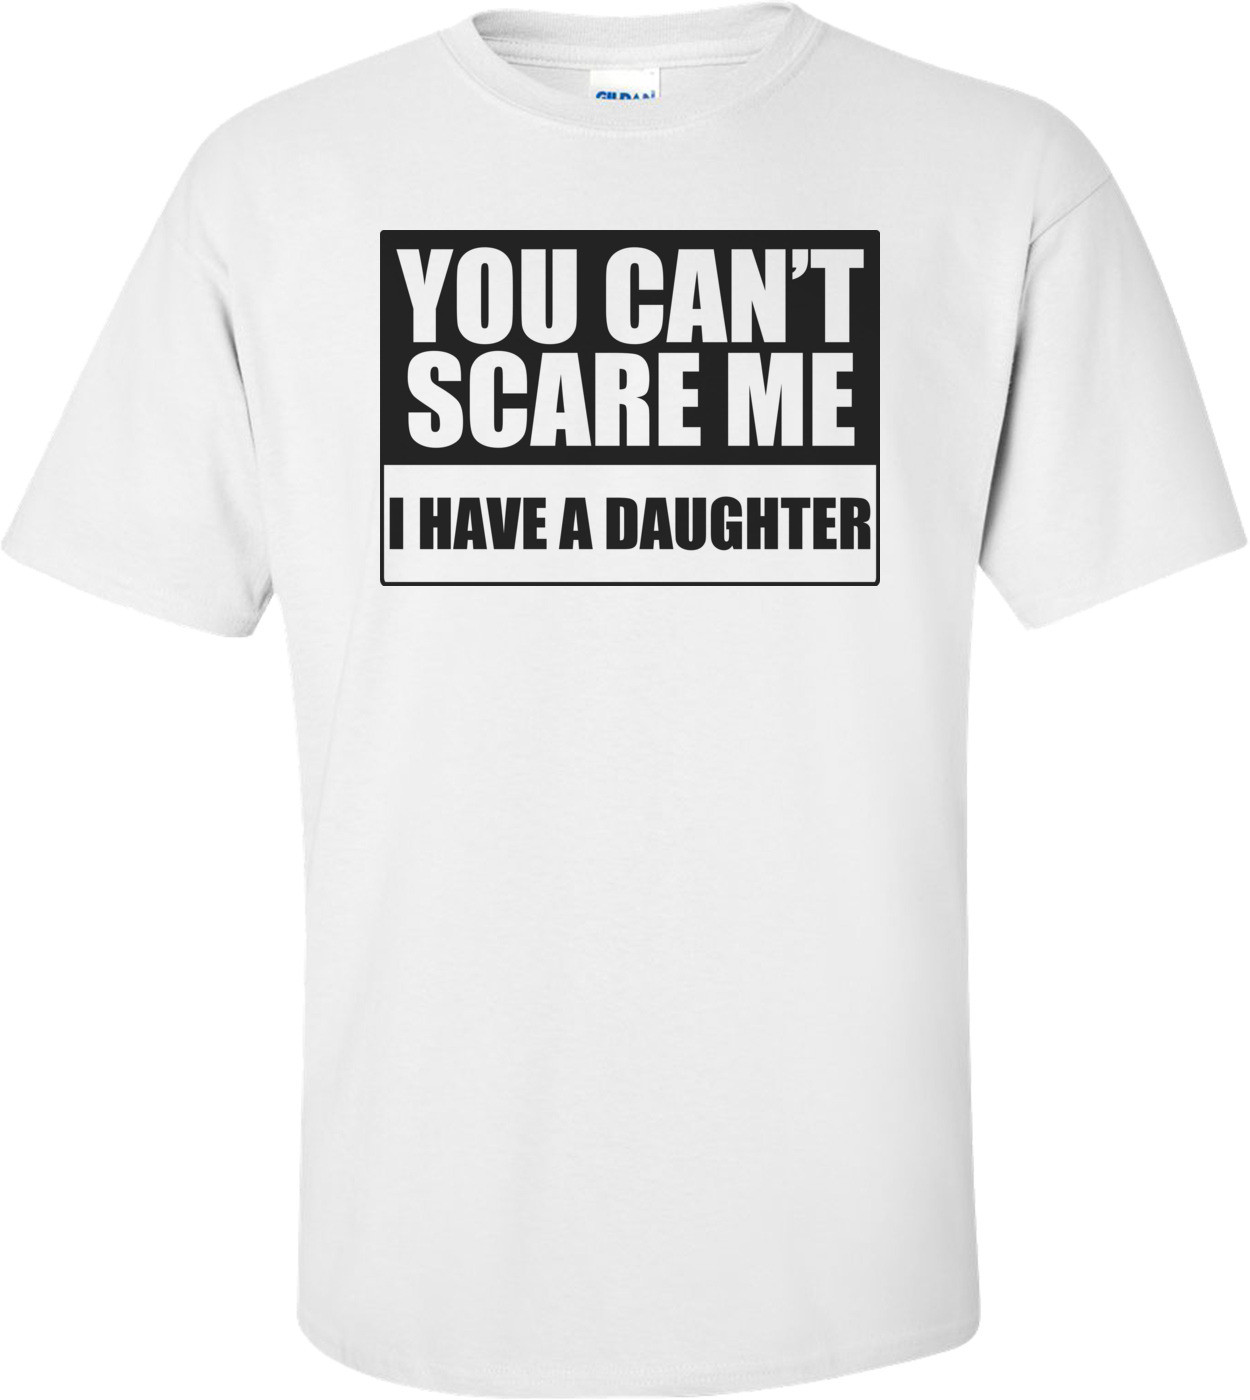 You Can't Scare Me, I Have A Daughter Funny